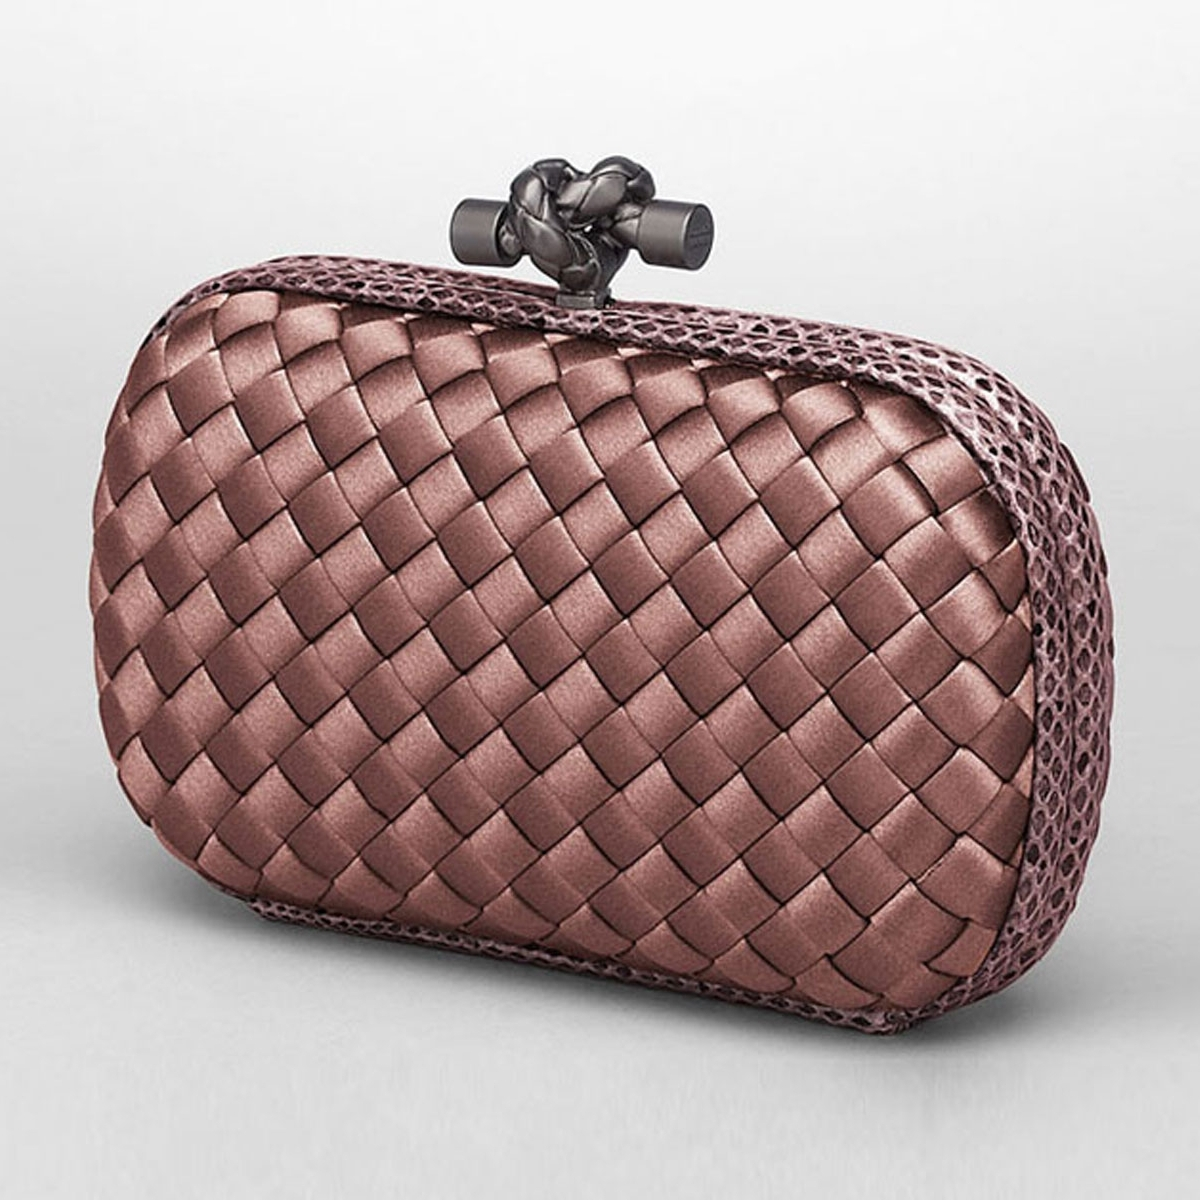 Bottega Veneta Intrec Knot Clutch